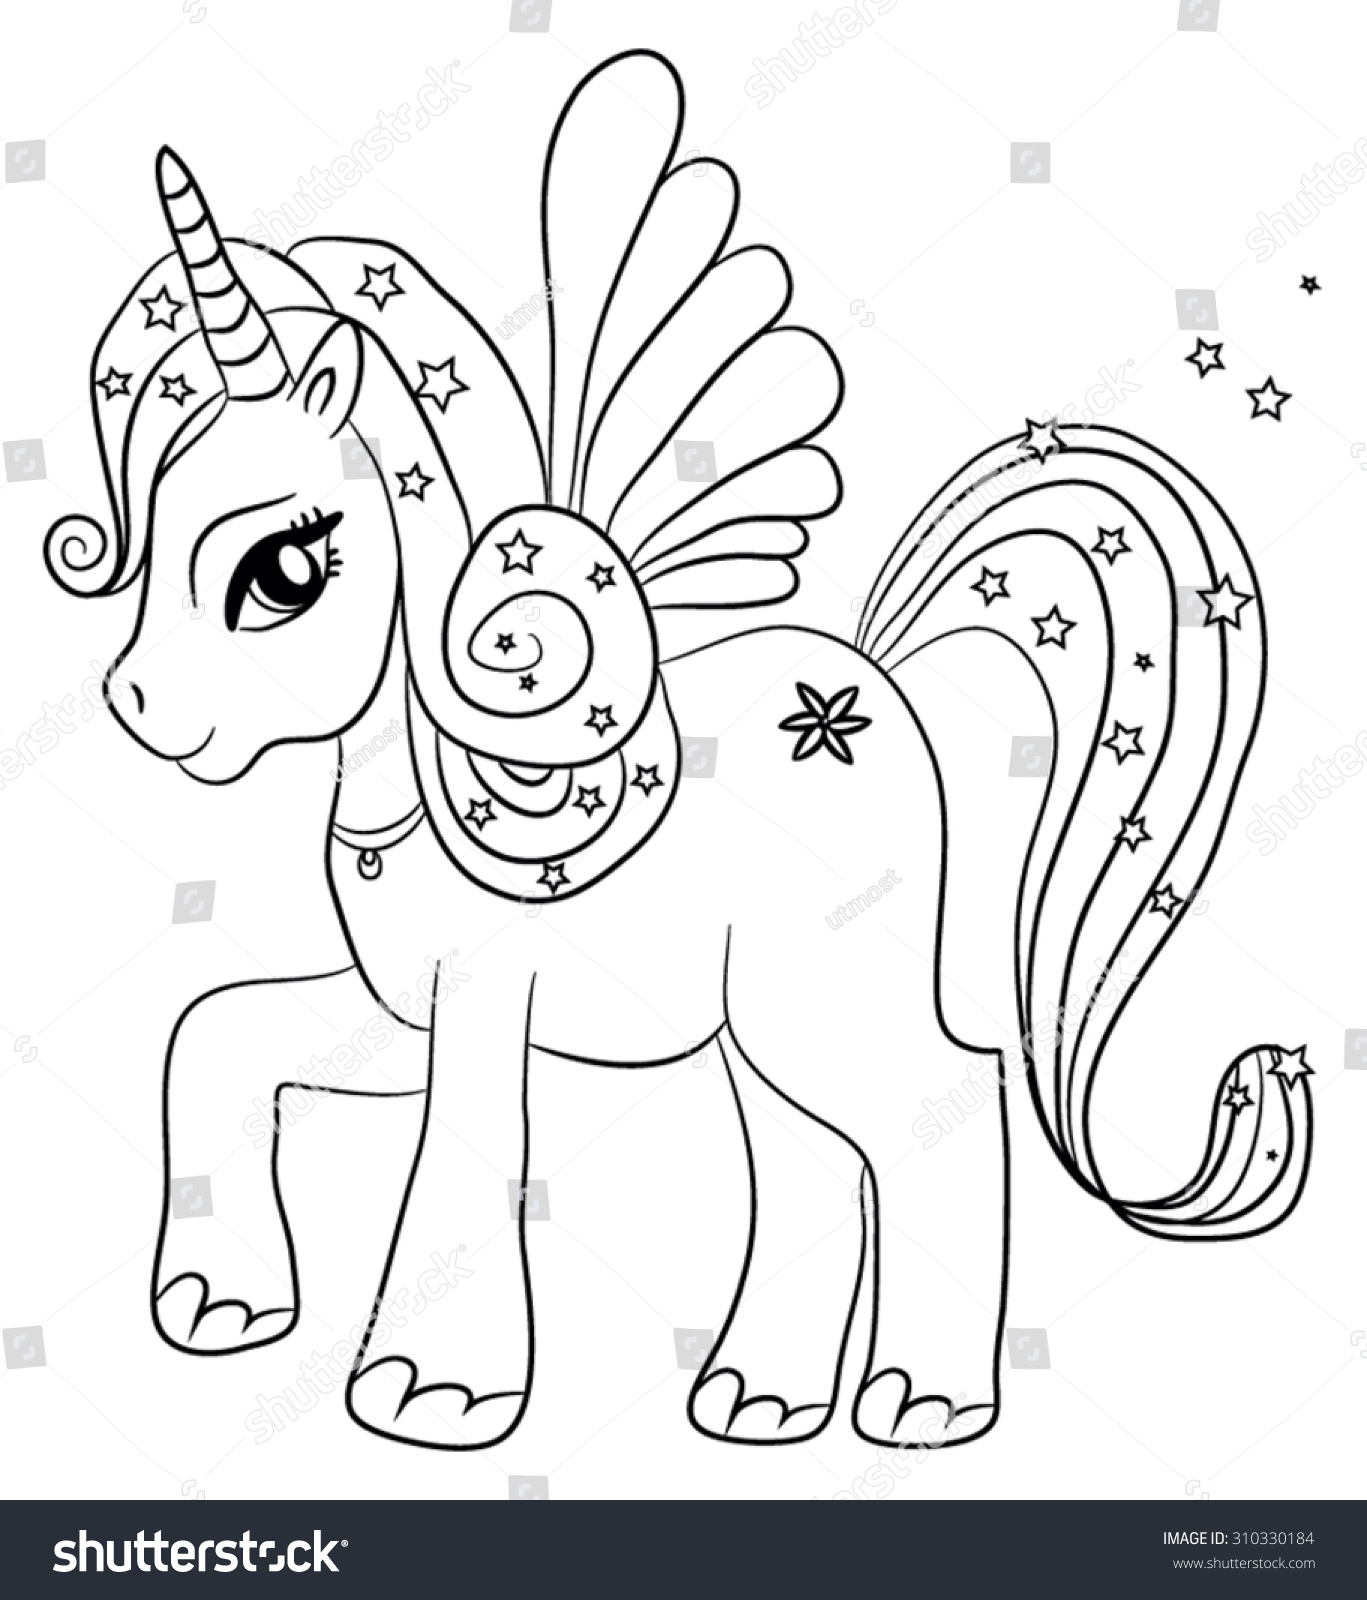 Cute cartoon fairytale unicorn coloring page for kids stock vector